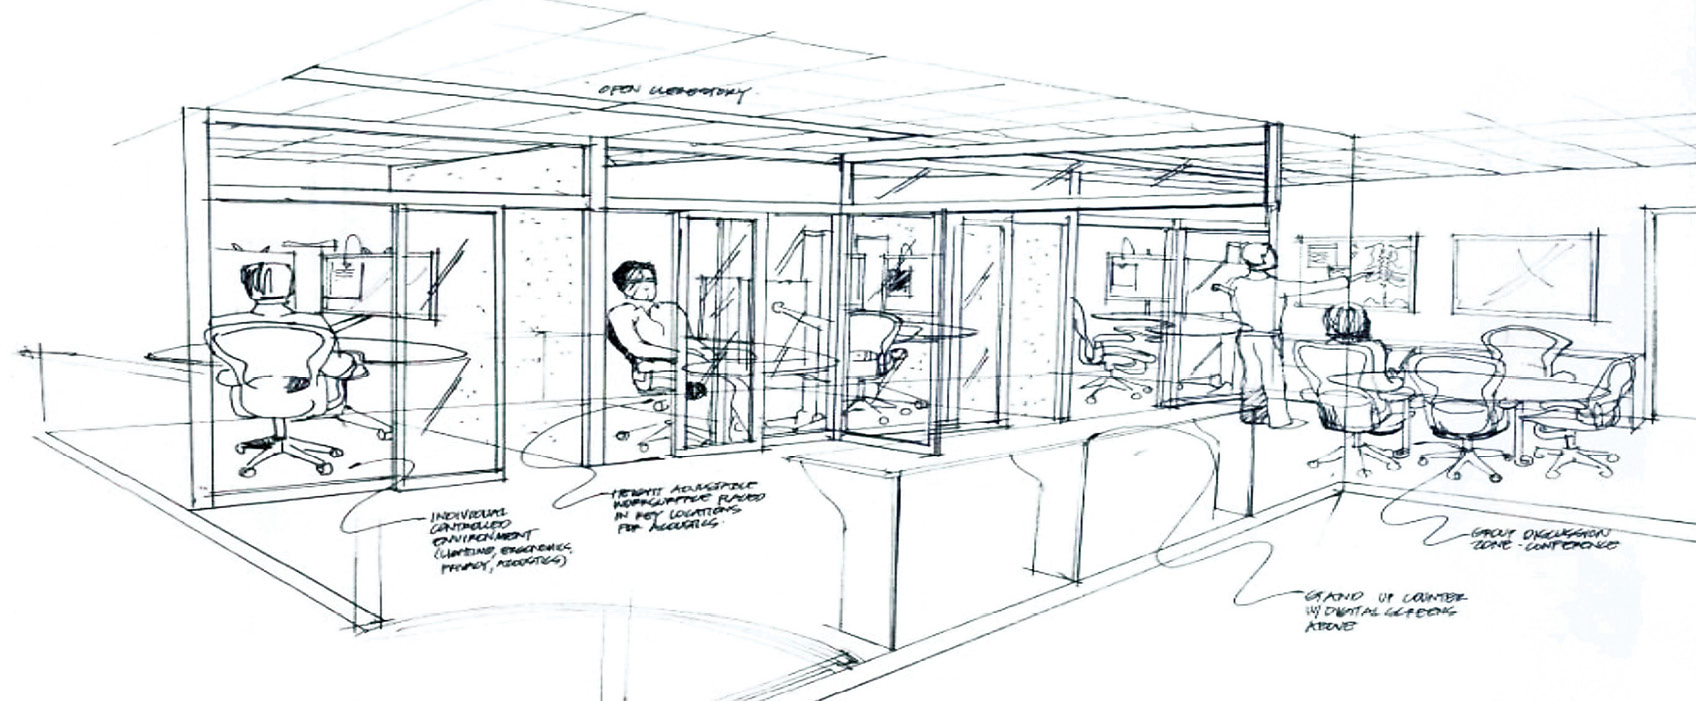 Redesigning Reading Room Helps Combat Ergonomic Injuries